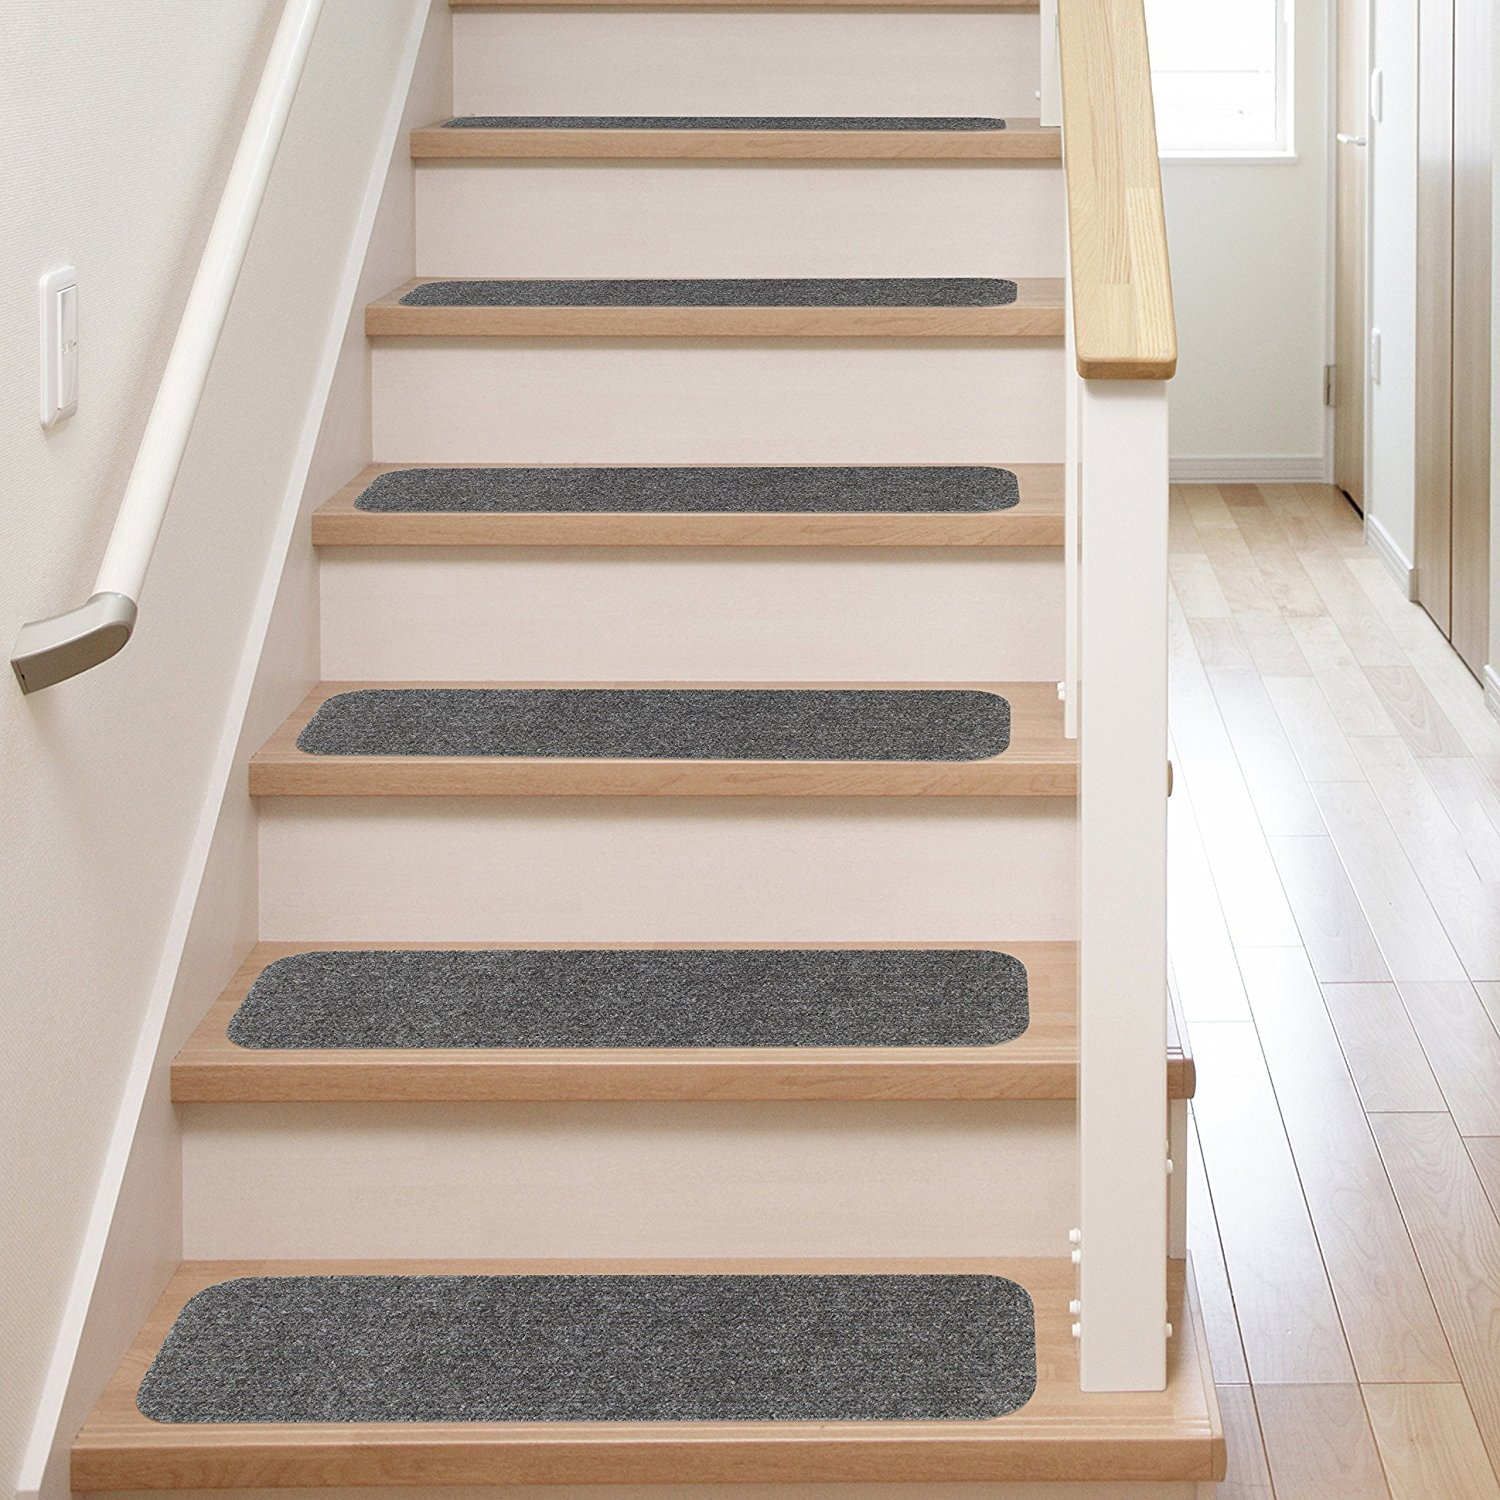 13 Stair Treads Non Slip Carpet Pads Easy Tape Installation In Stair Tread Rugs Indoor (Image 1 of 15)